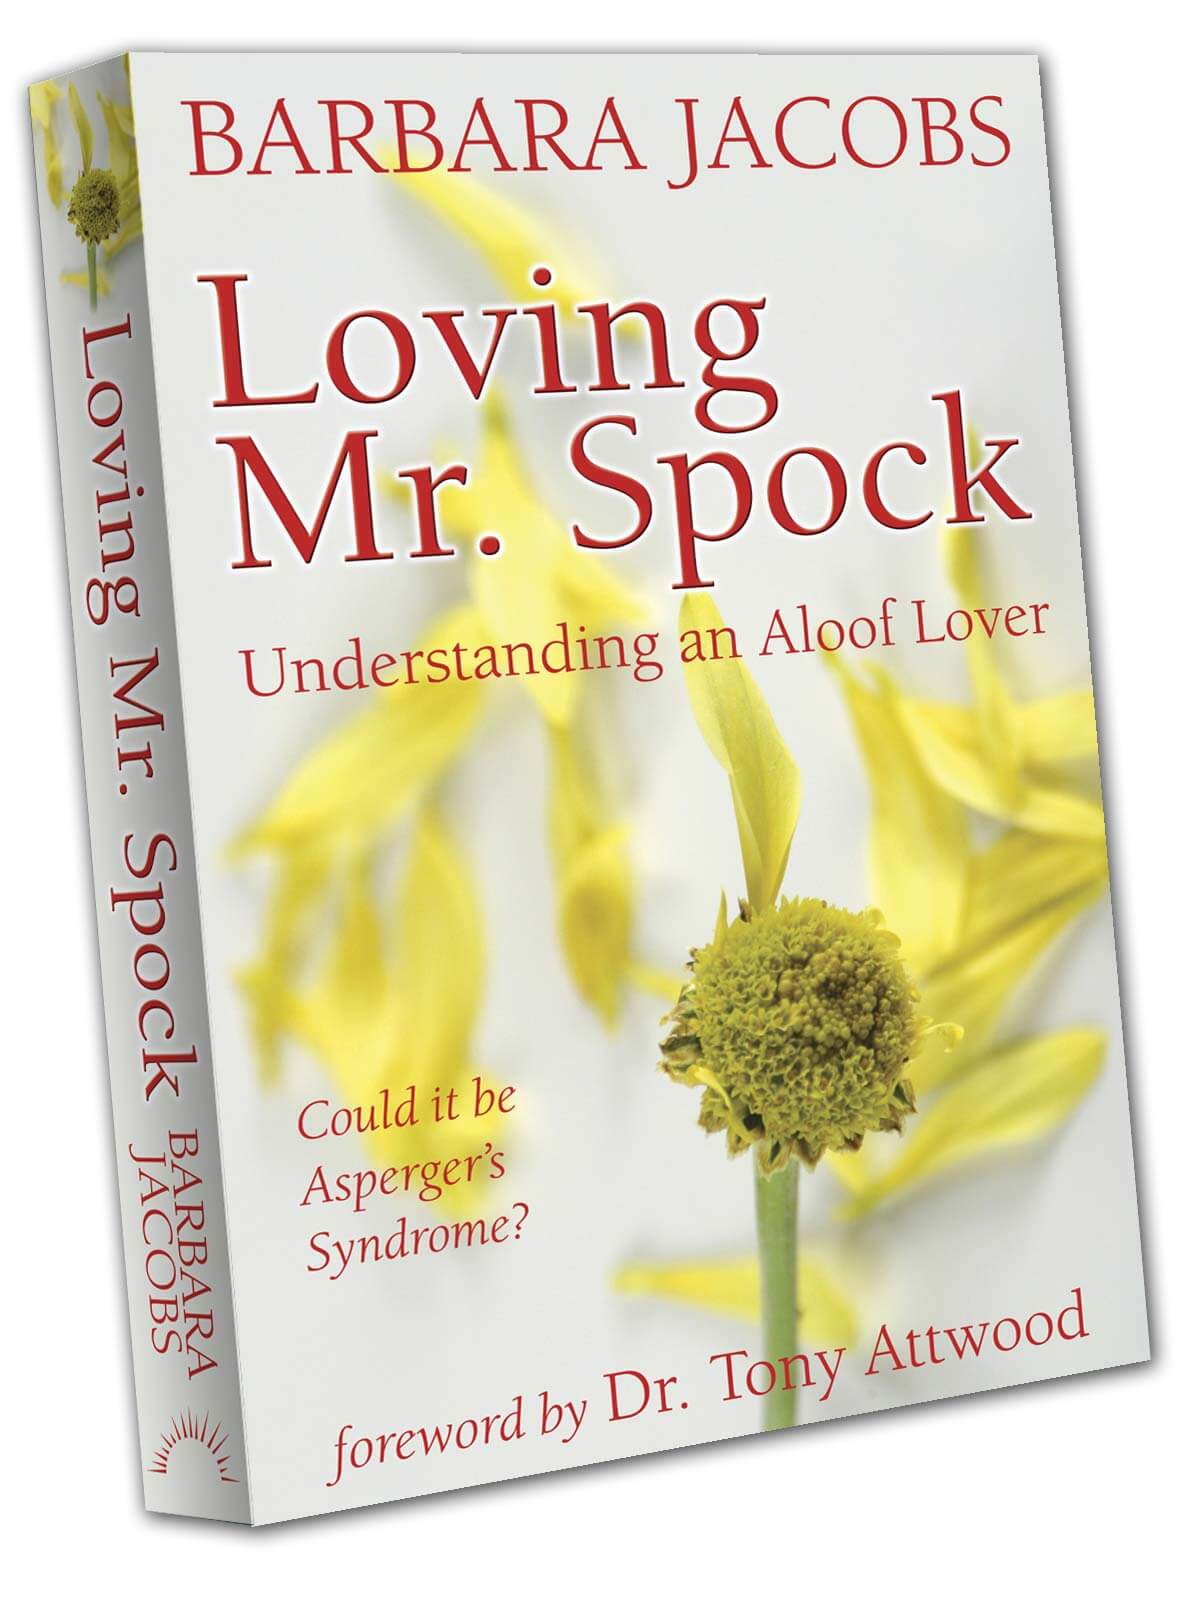 Loving Mr. Spock: Understanding an Aloof Lover: Could It Be Asperger's Syndrome?